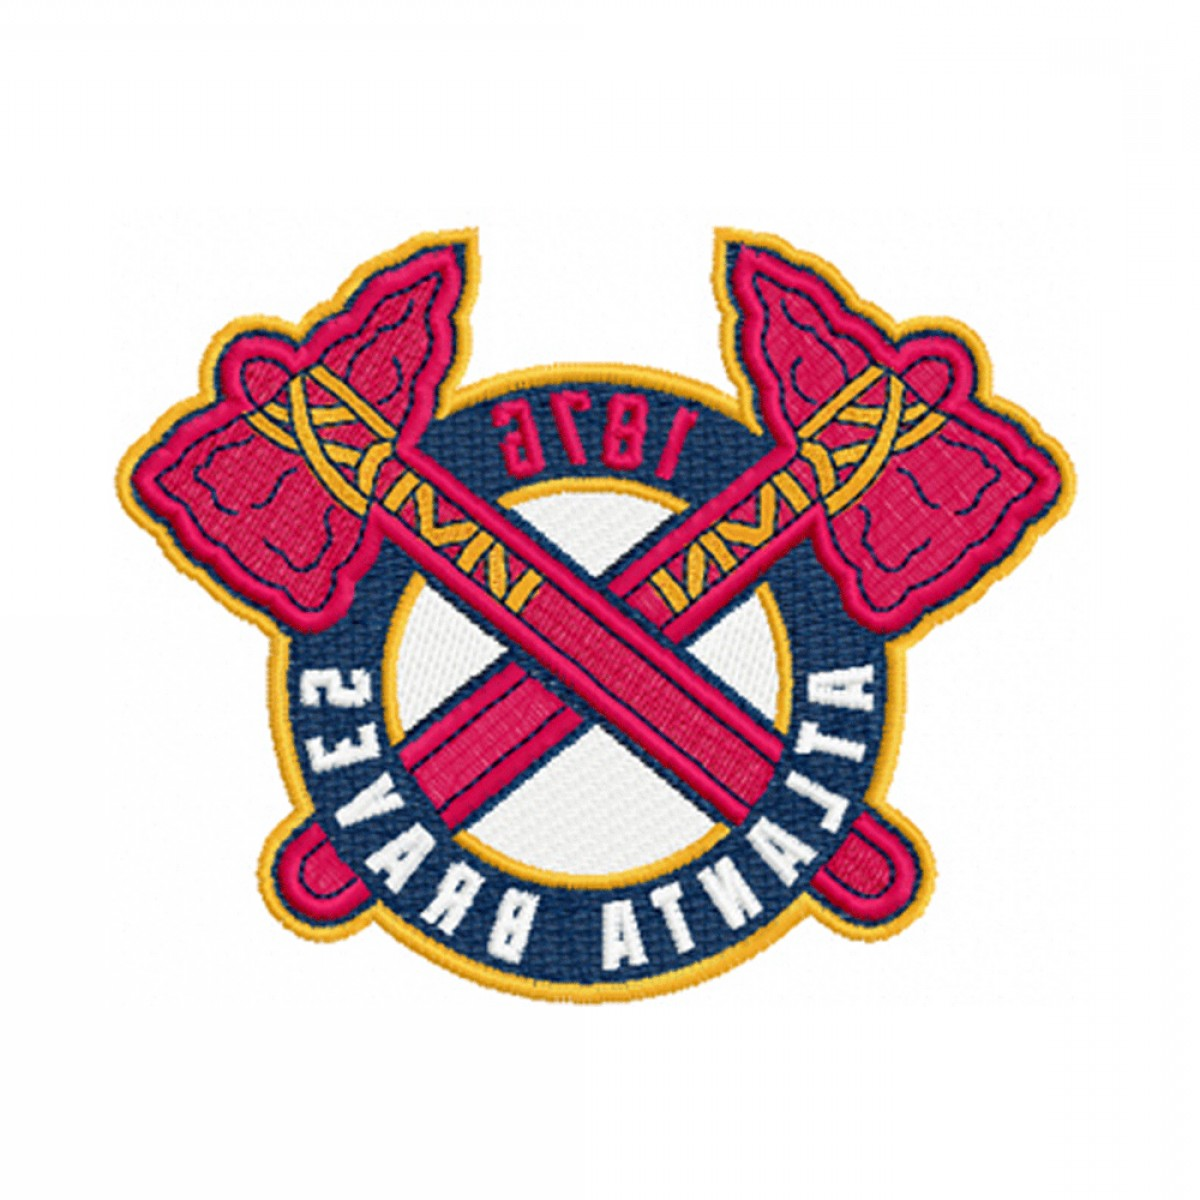 Braves Logo Vector: Atlanta Braves Embroidery Design Instant Download